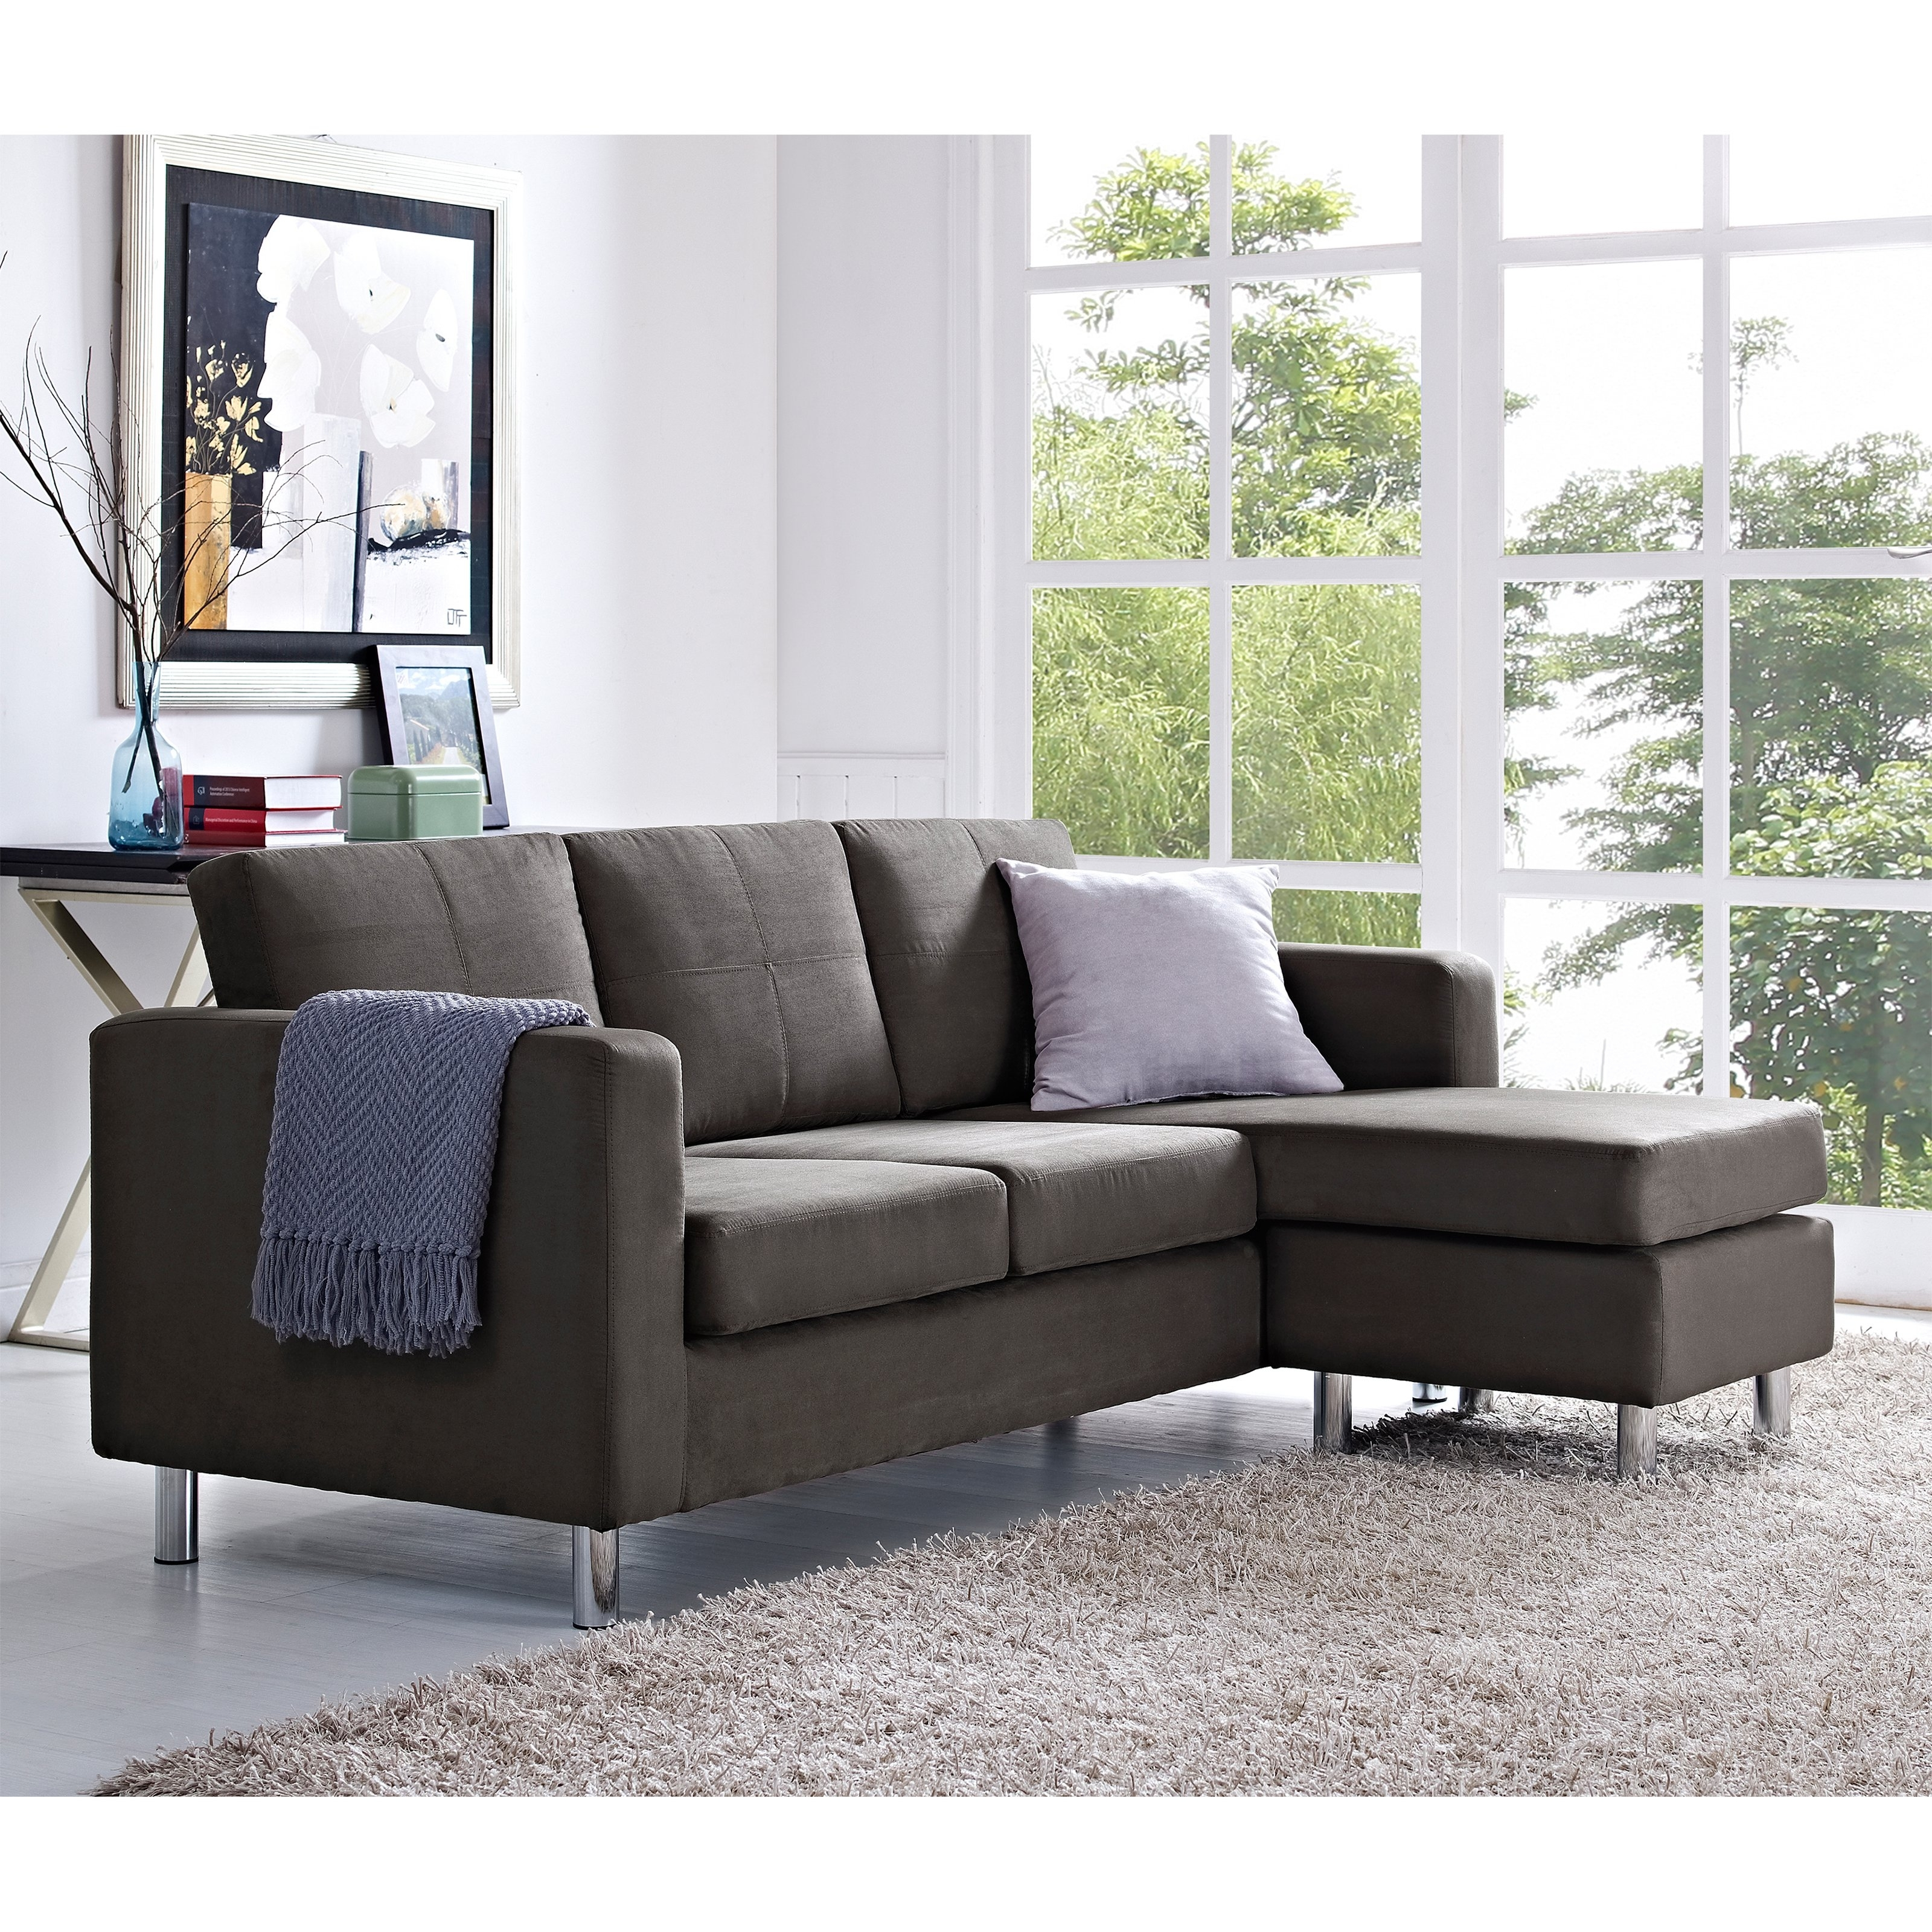 Tips On Buying And Placing A Sectional Sofa For Small Spaces Regarding Evansville In Sectional Sofas (Image 9 of 10)